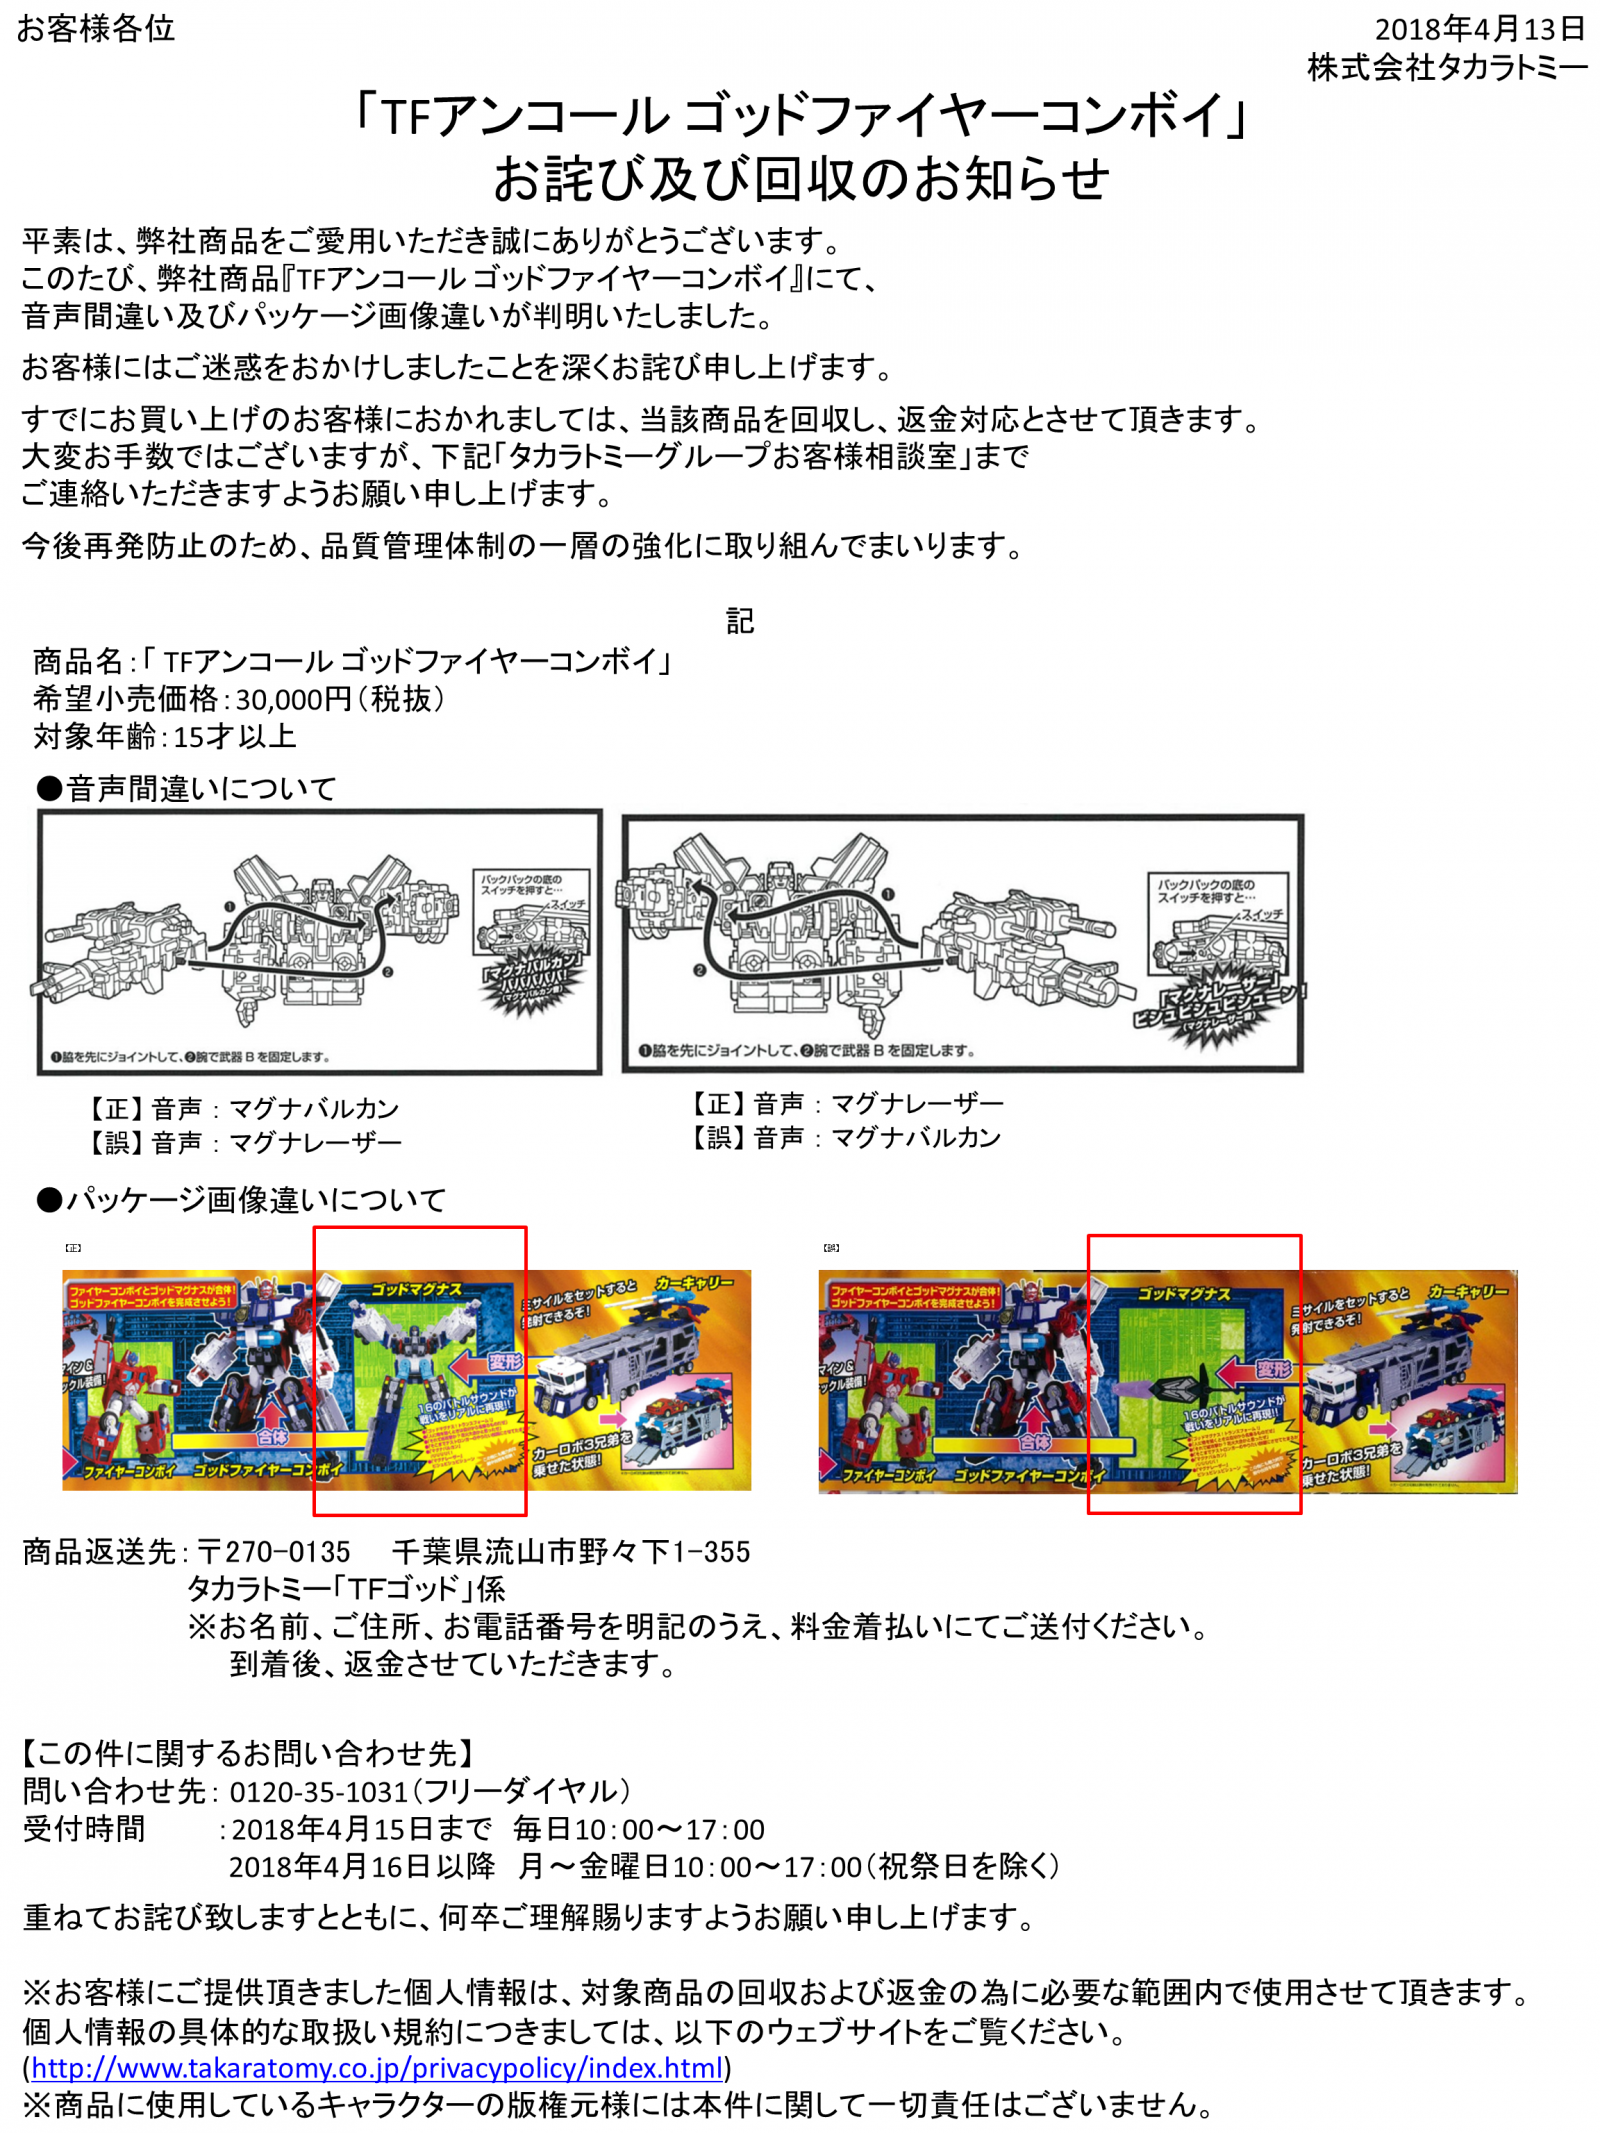 Transformers News: Official Apology and Voluntary Recall Notice from Takara for Encore God Fire Convoy Set